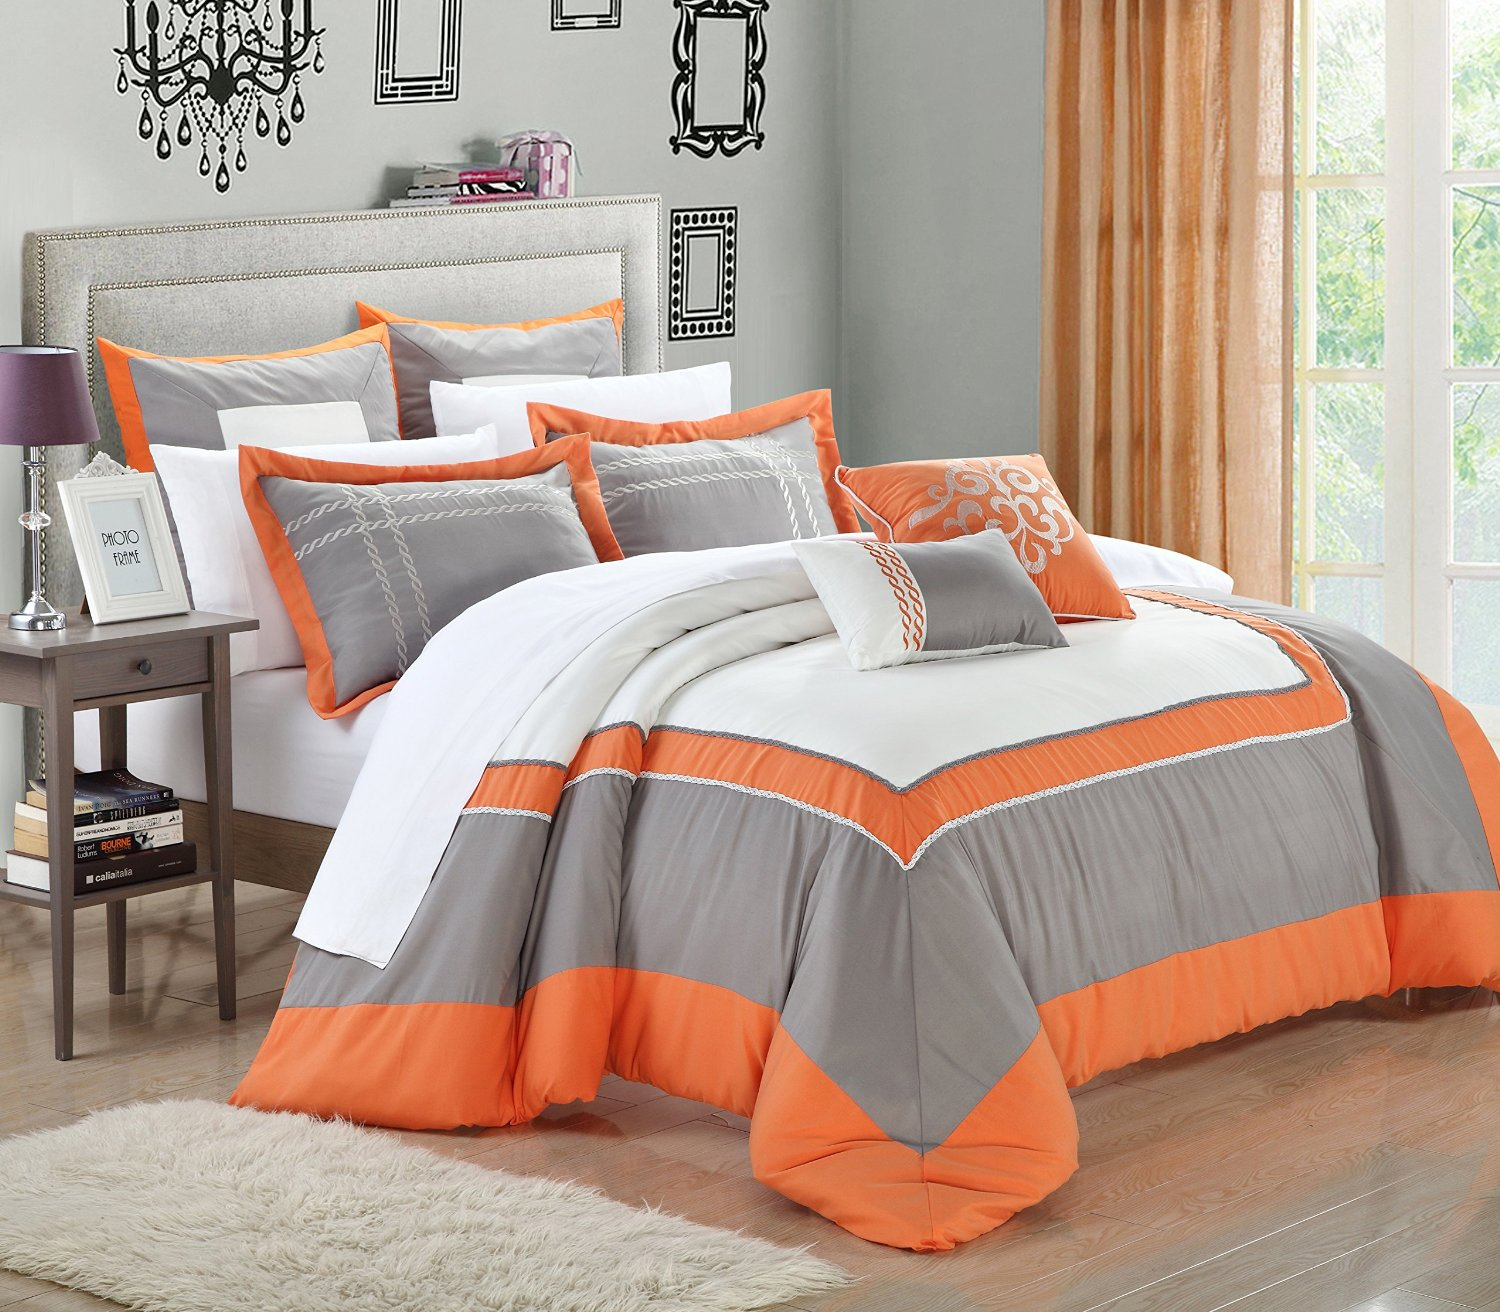 queen chic king amazon com cotton set piece paisley kitchen size pattern orange home comforter boho moroccan dp bedding grey quilt